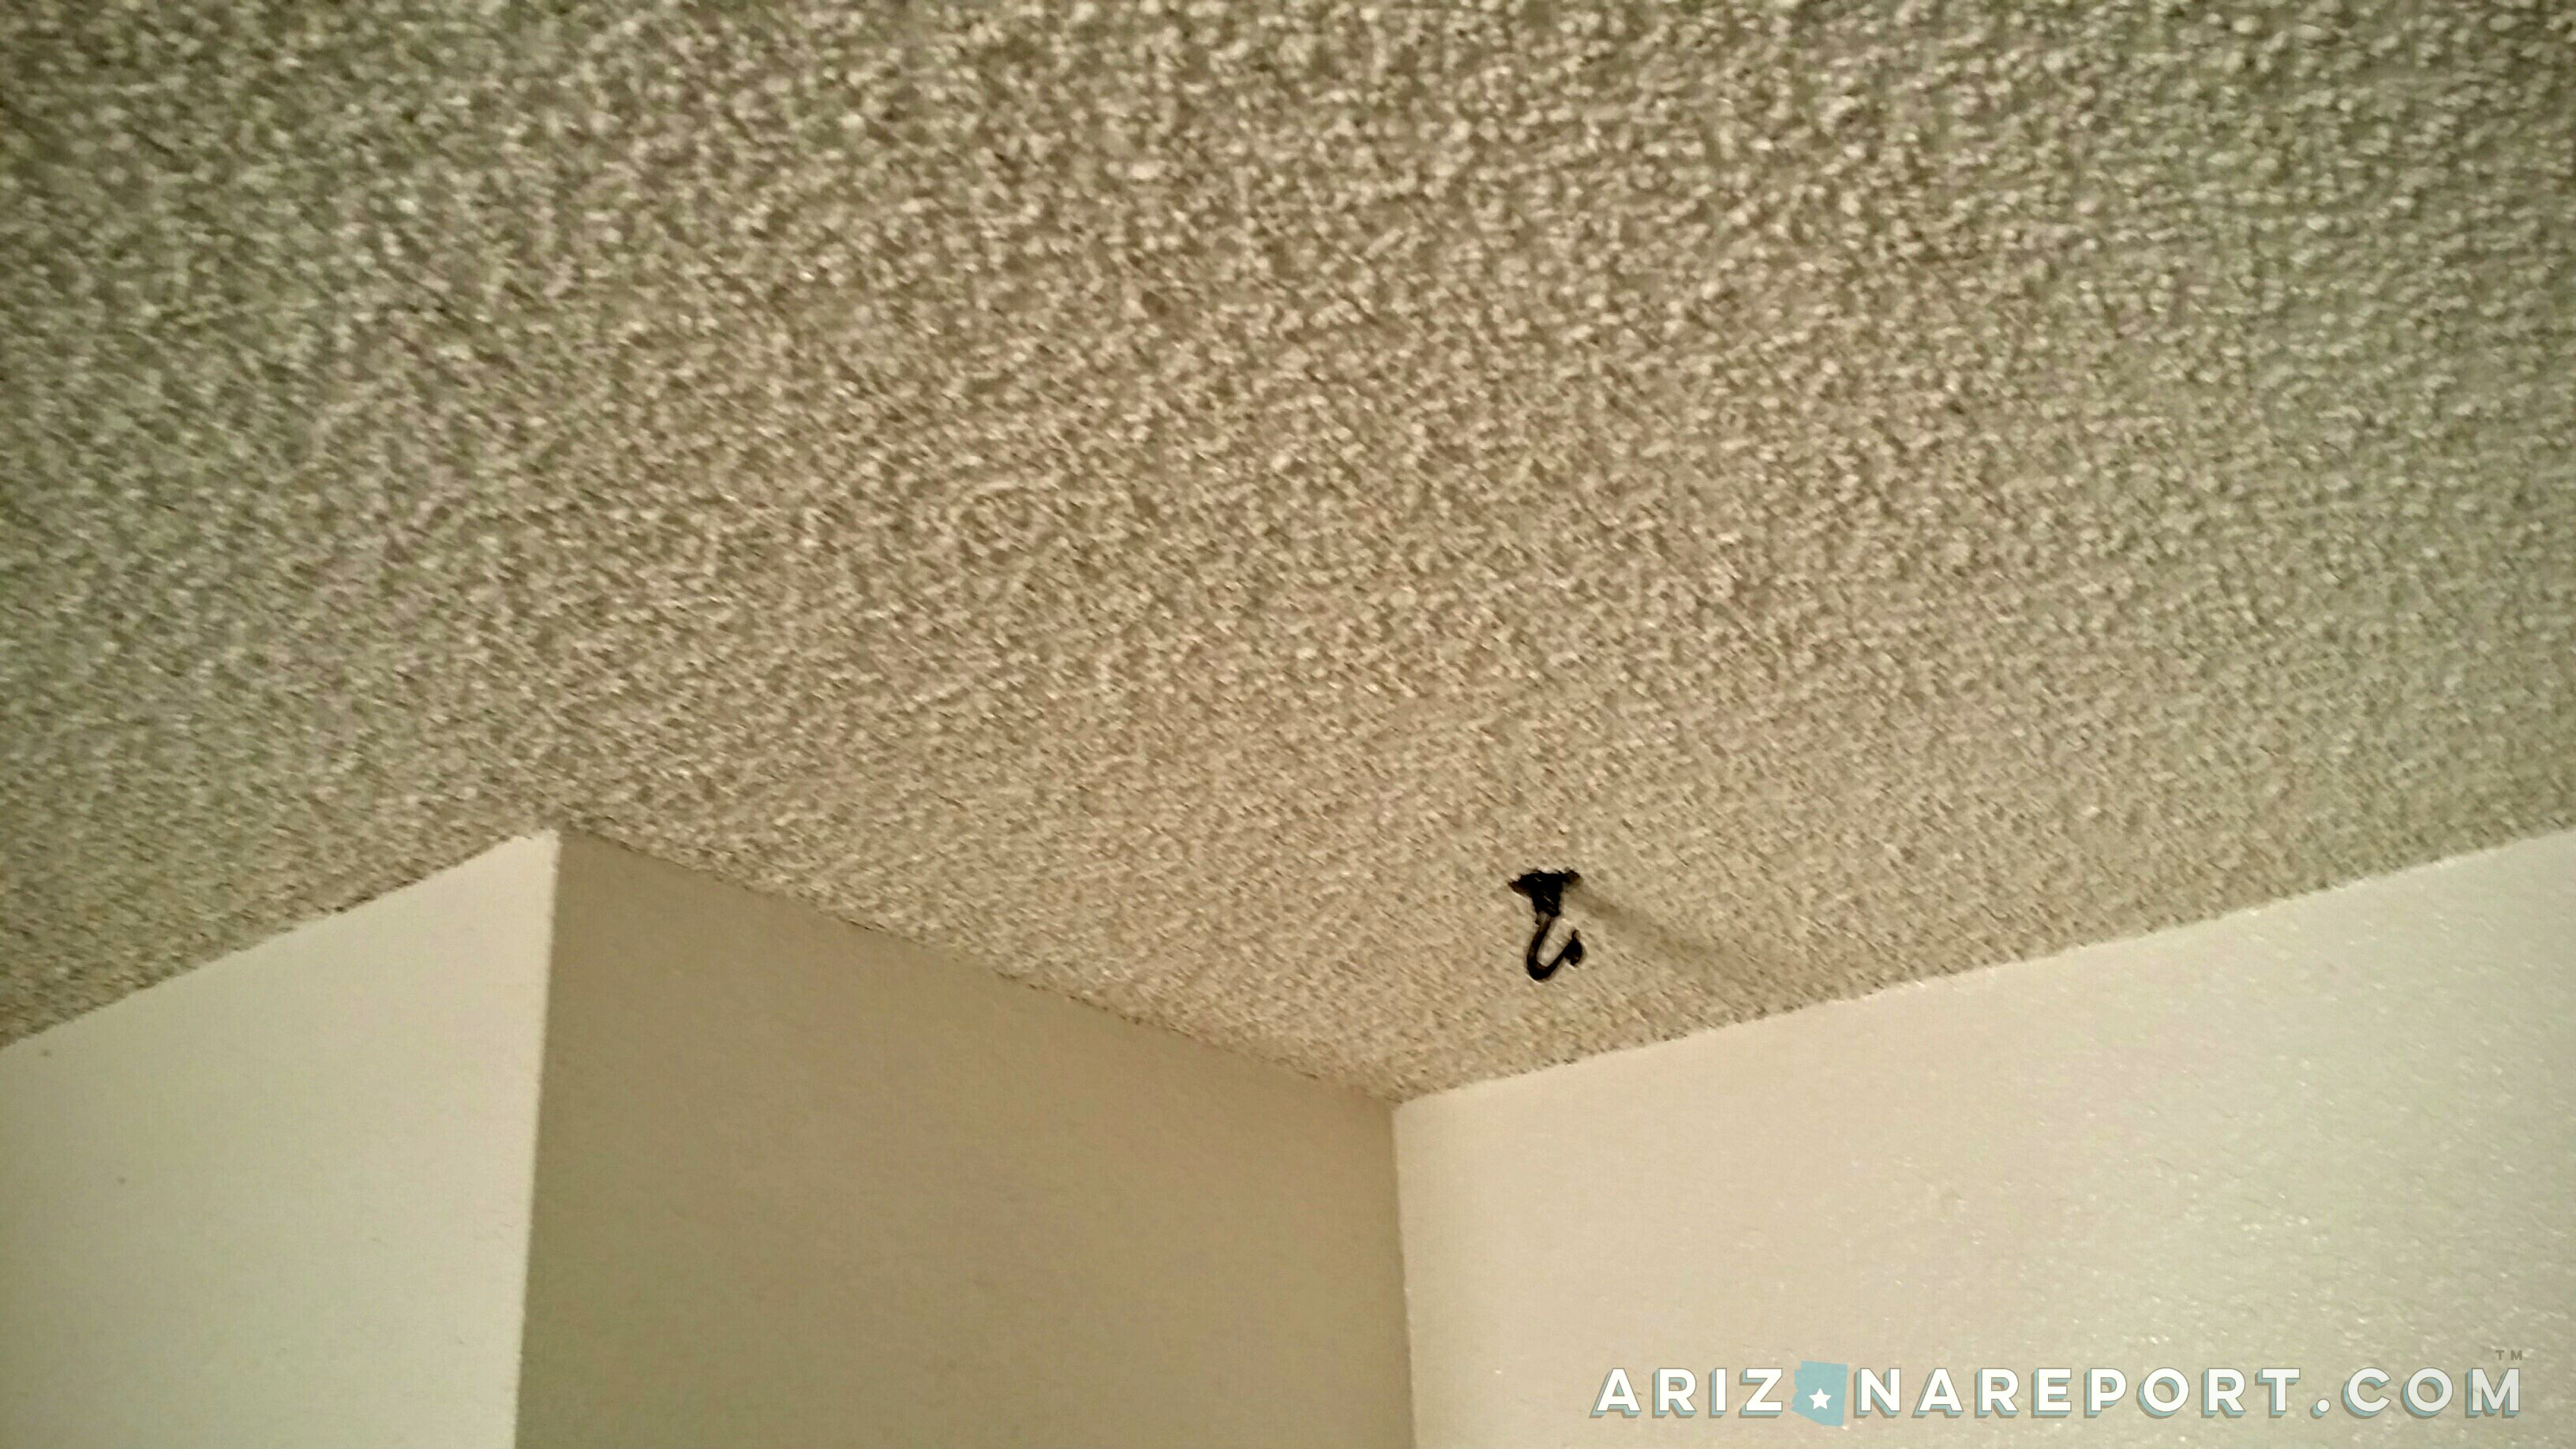 Popcorn Textured Ceilings May Contain Hidden Risk